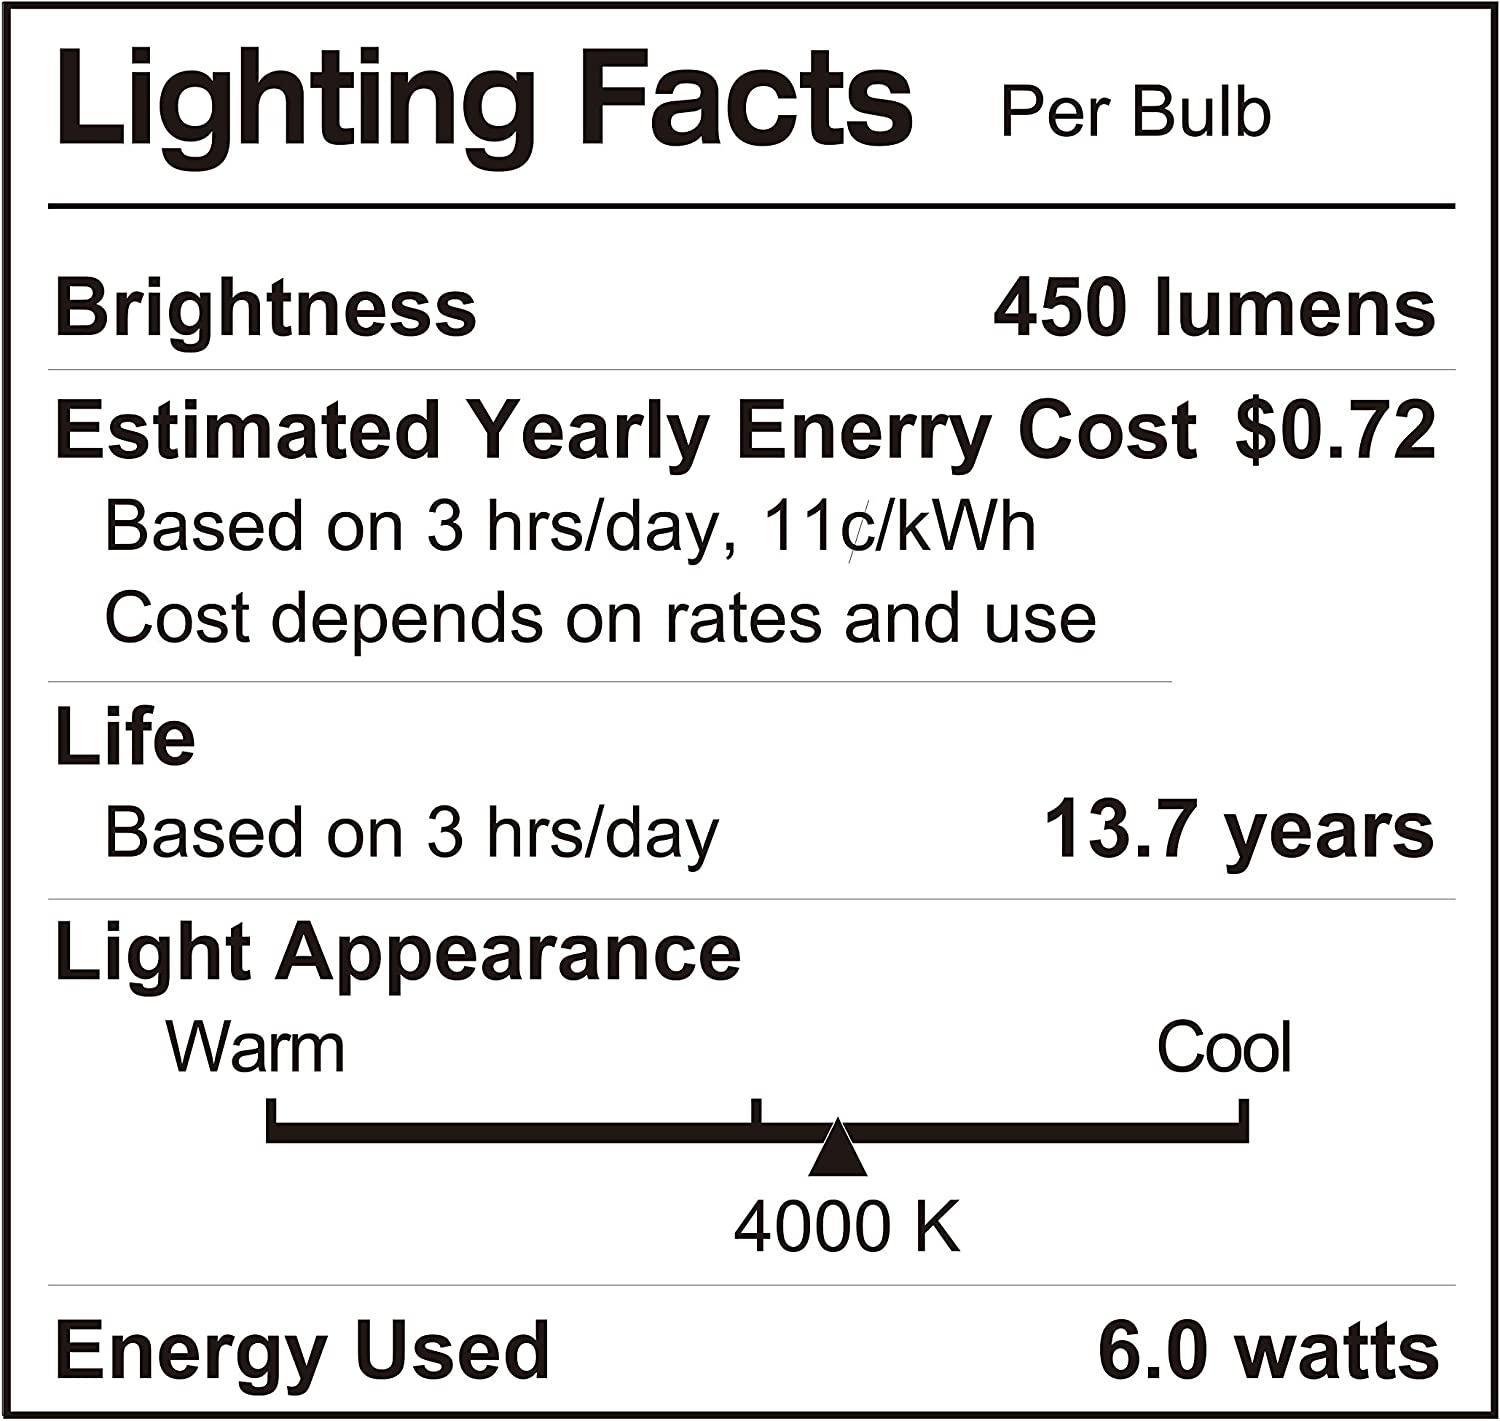 E26 Daylight UL Certified 4-Pack LUNO A19 Non-Dimmable LED Bulb Medium Base 40W Equivalent 5000K 6.0W 450 Lumens